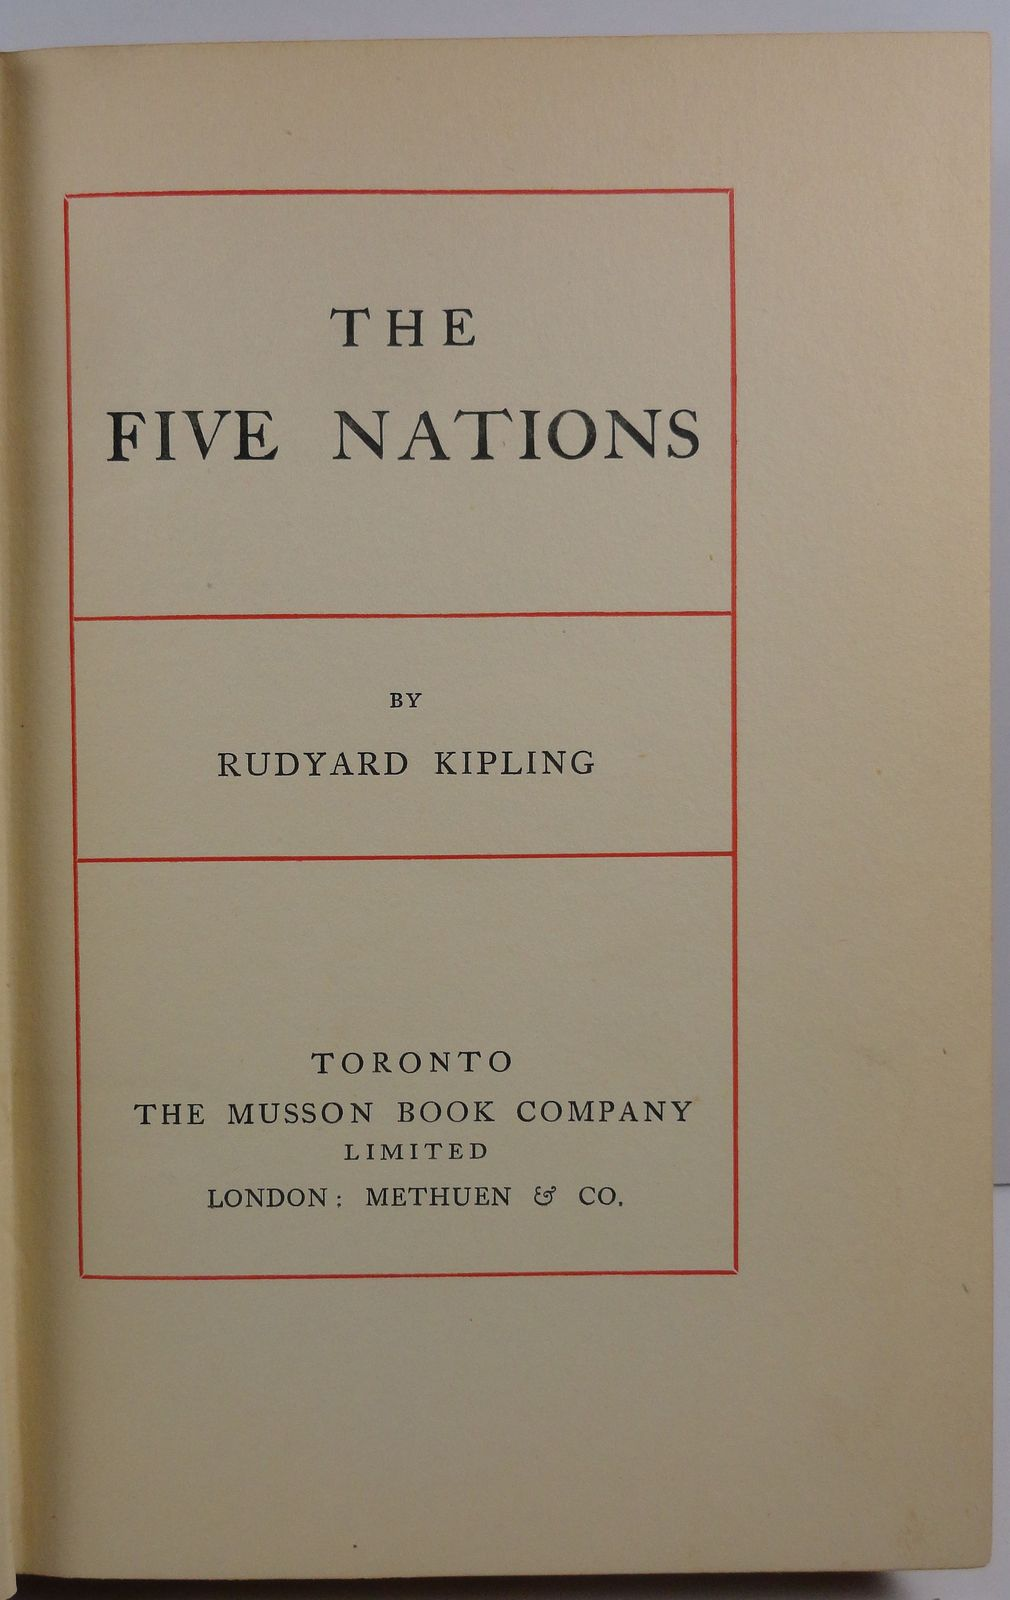 The Five Nations by Rudyard Kipling The Musson Book Company